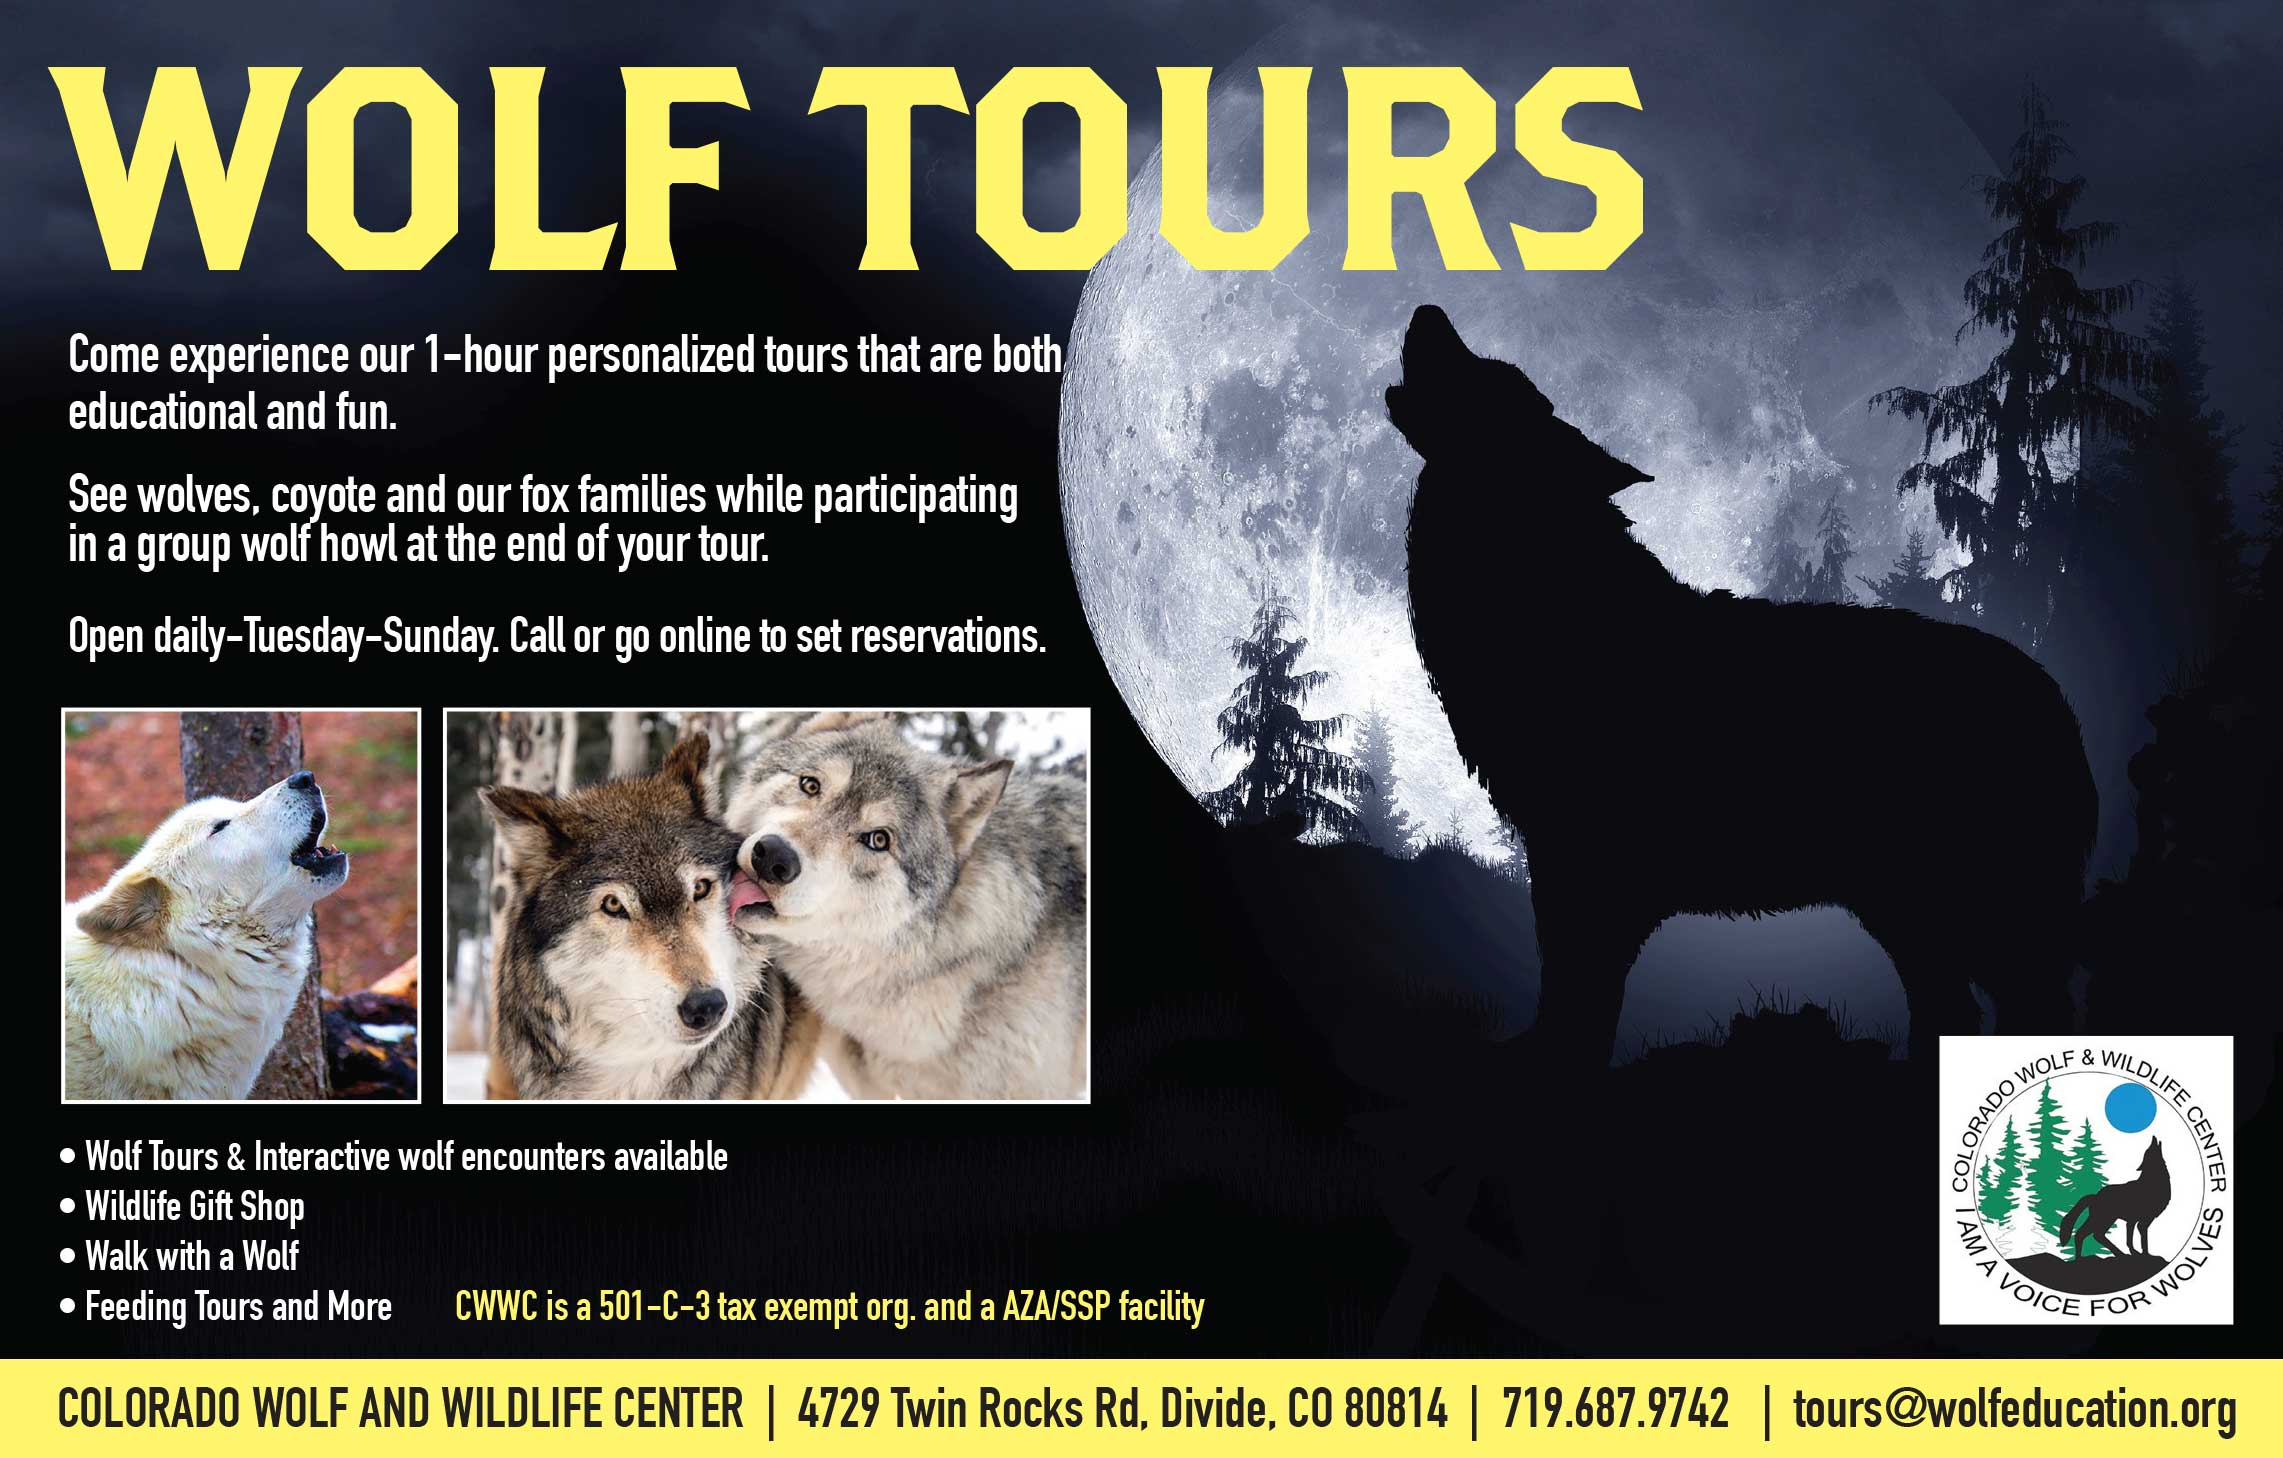 Wolf Tours